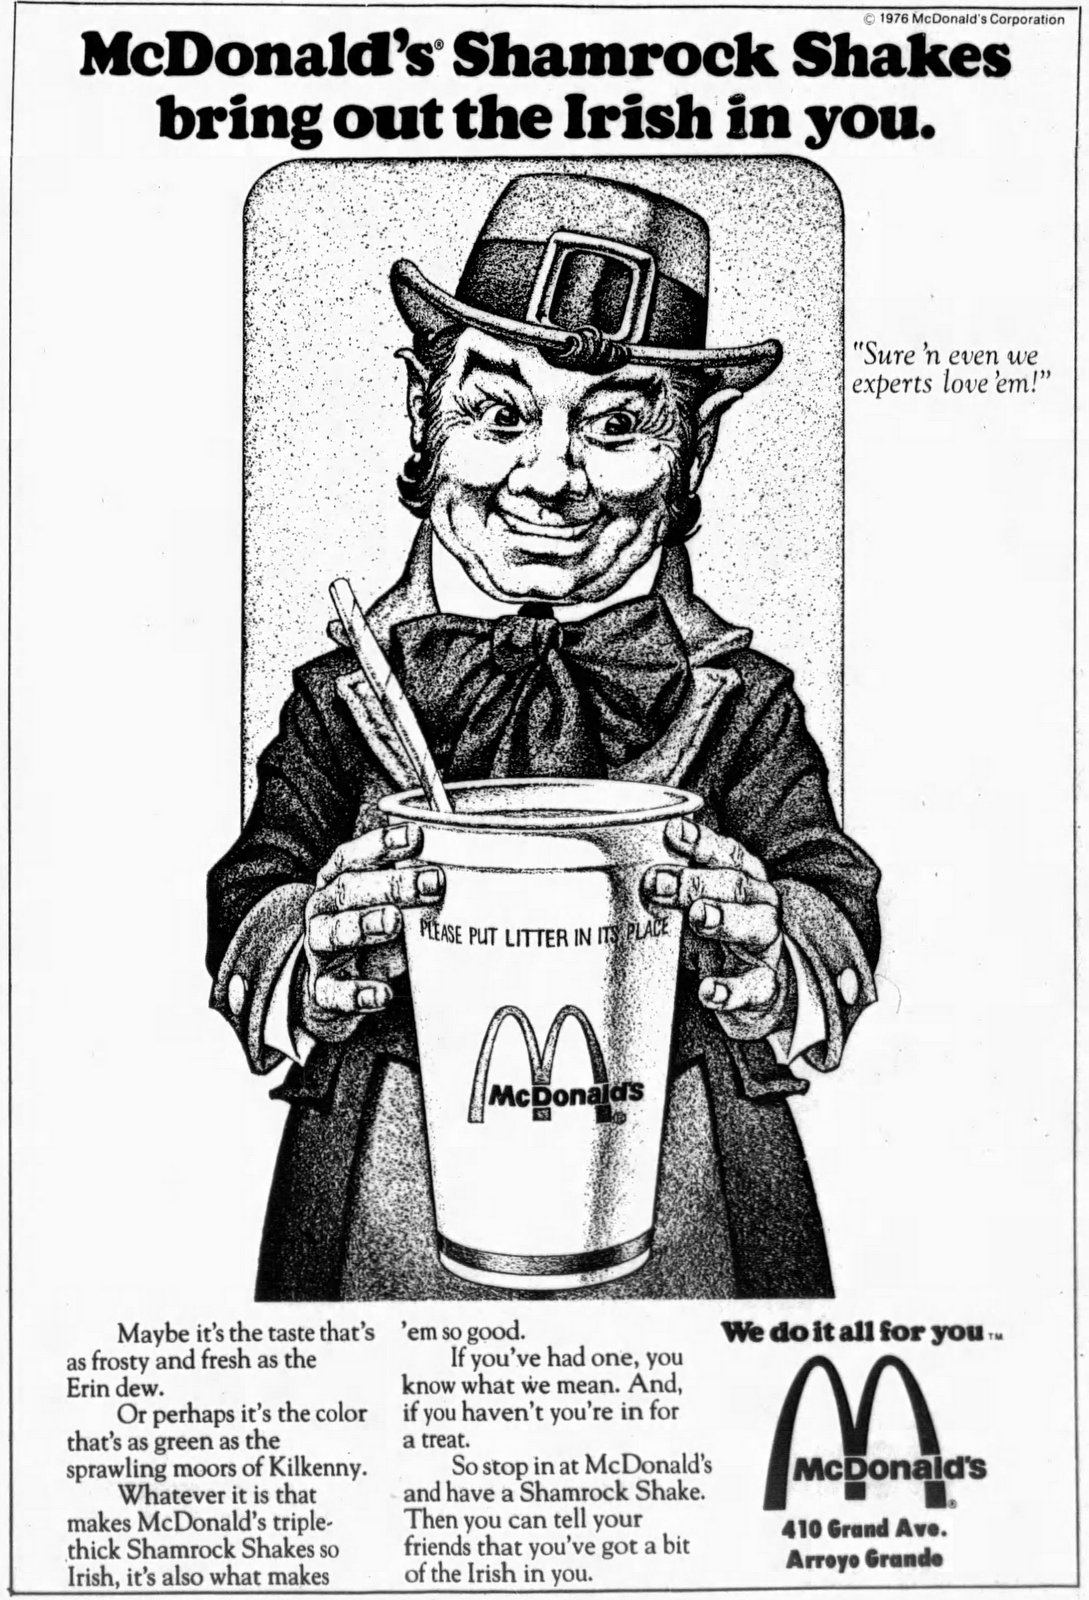 McDonald's Shamrock Shakes bring out the Irish in you. (1976)